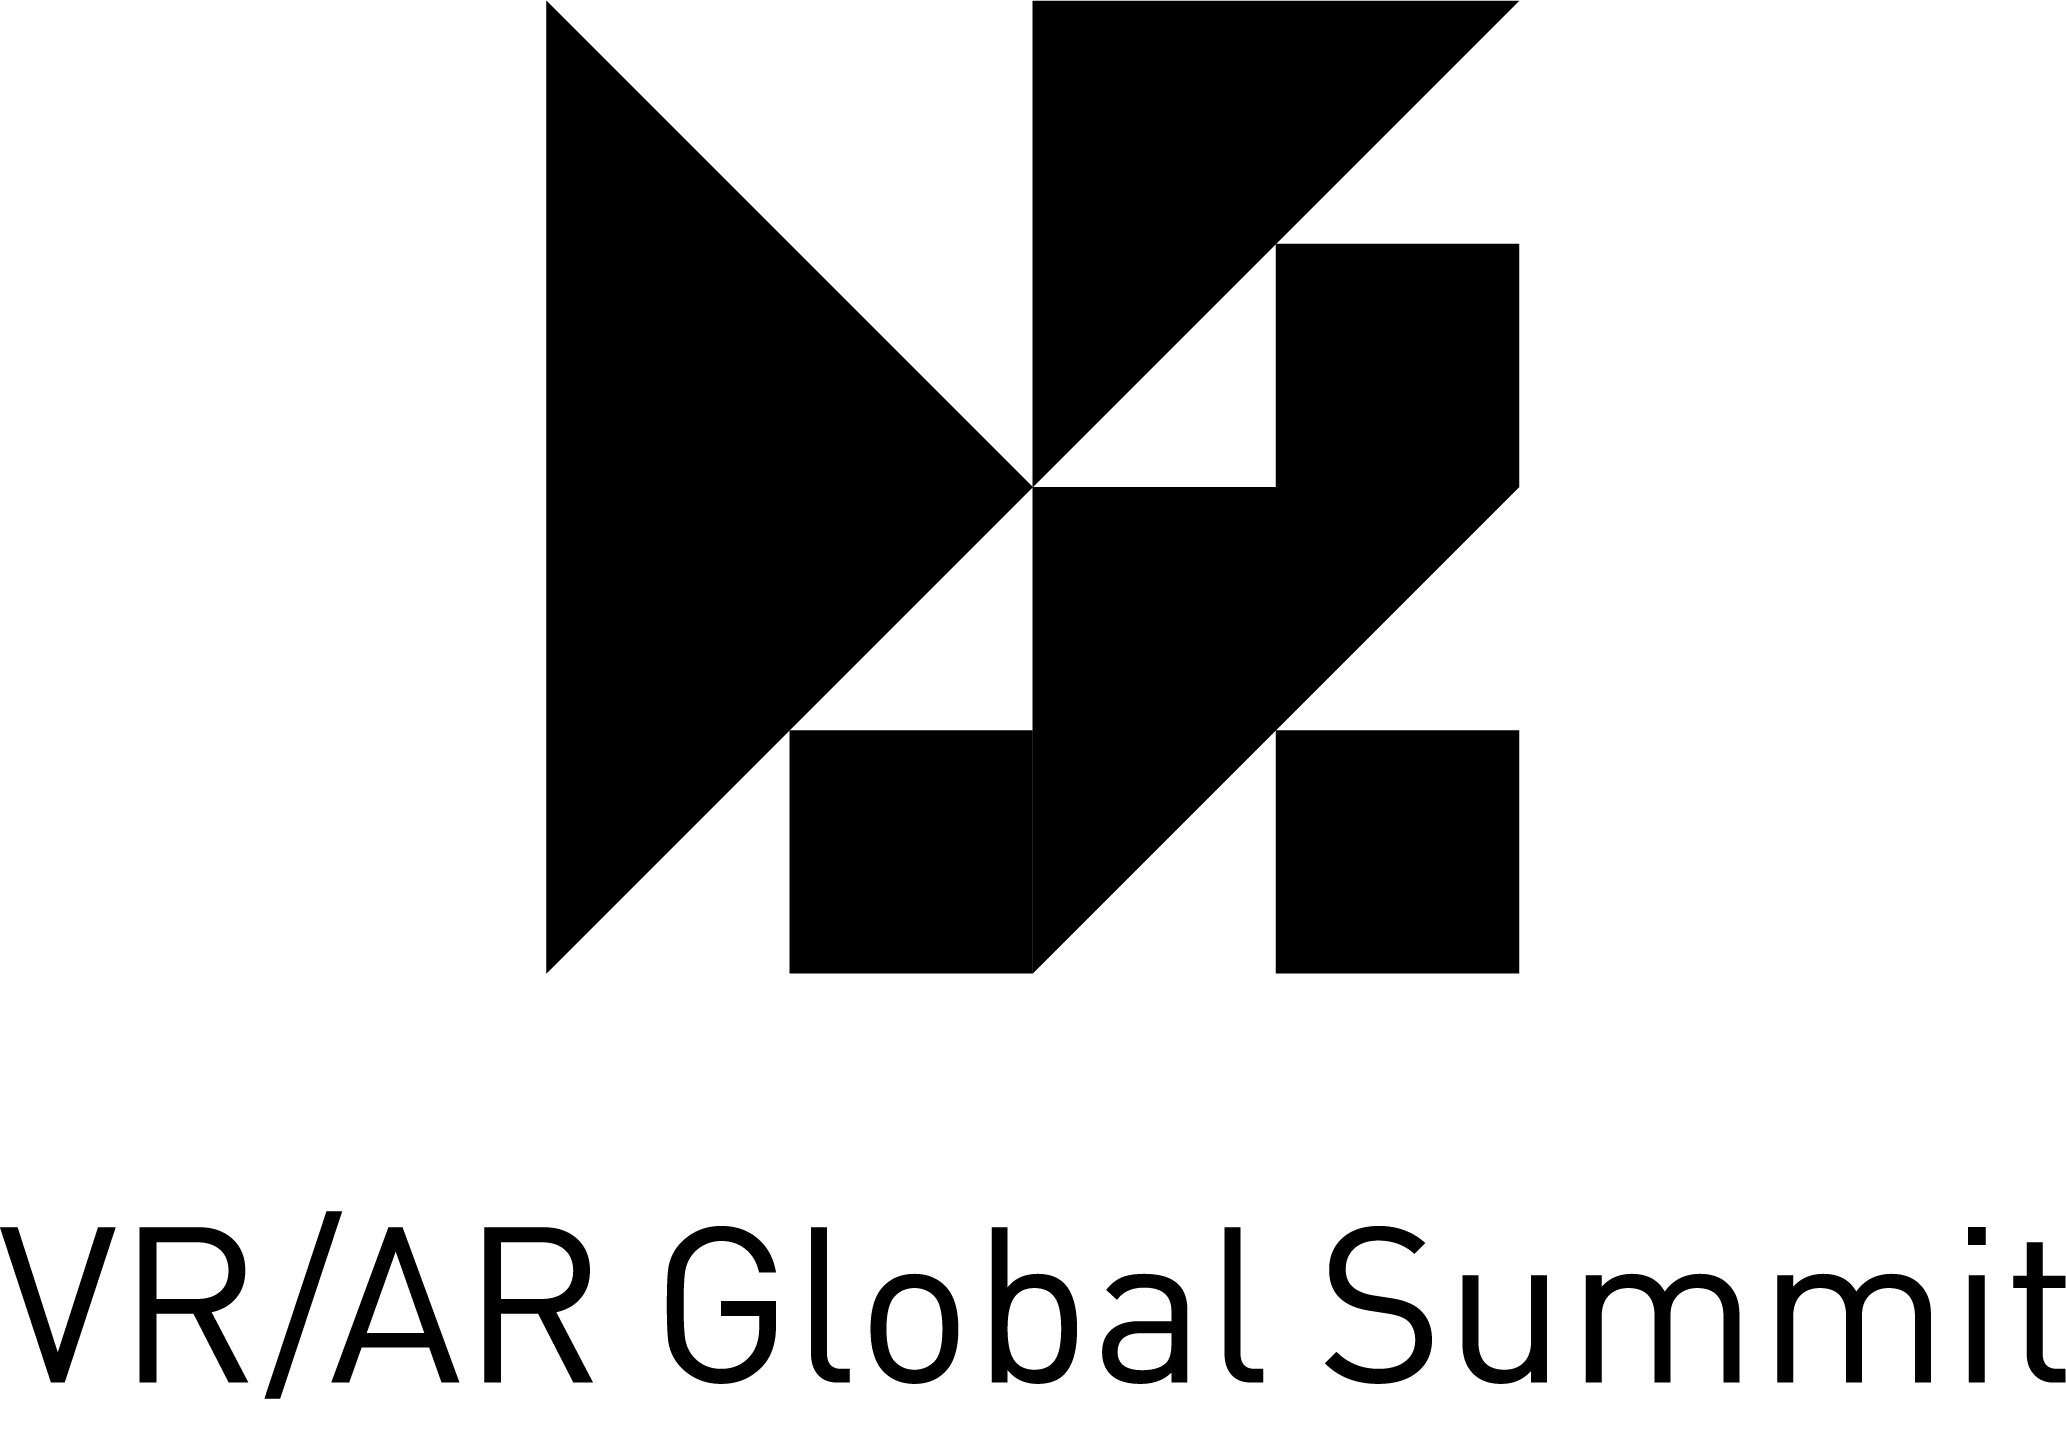 VR/AR NYC Chapter Event (hosted at Microsoft) — VR/AR